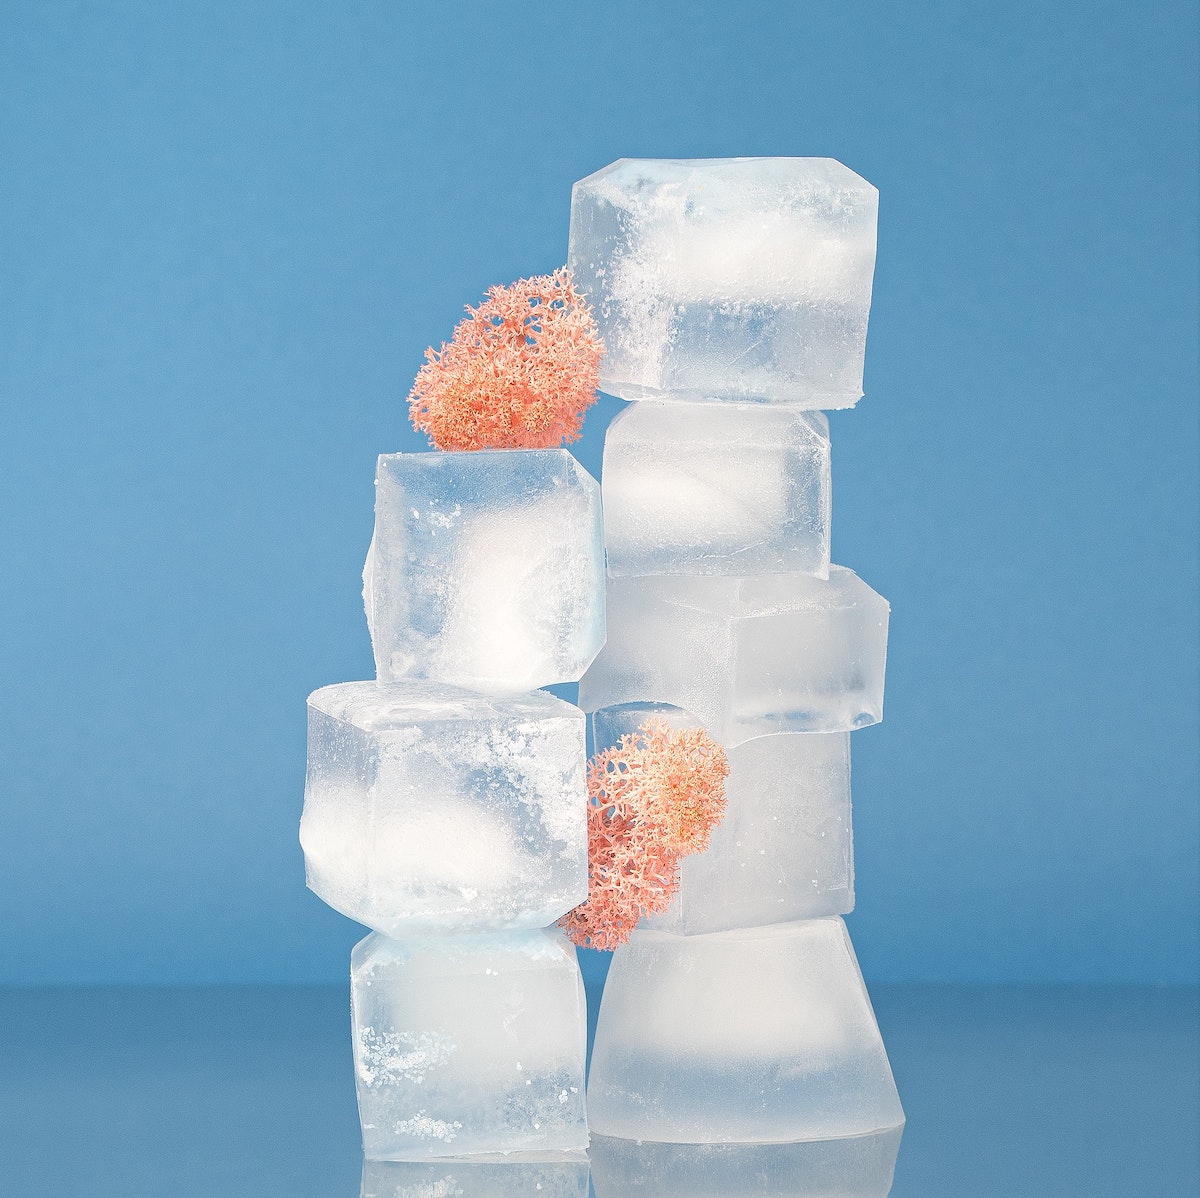 Ice cubes stacked on blue background